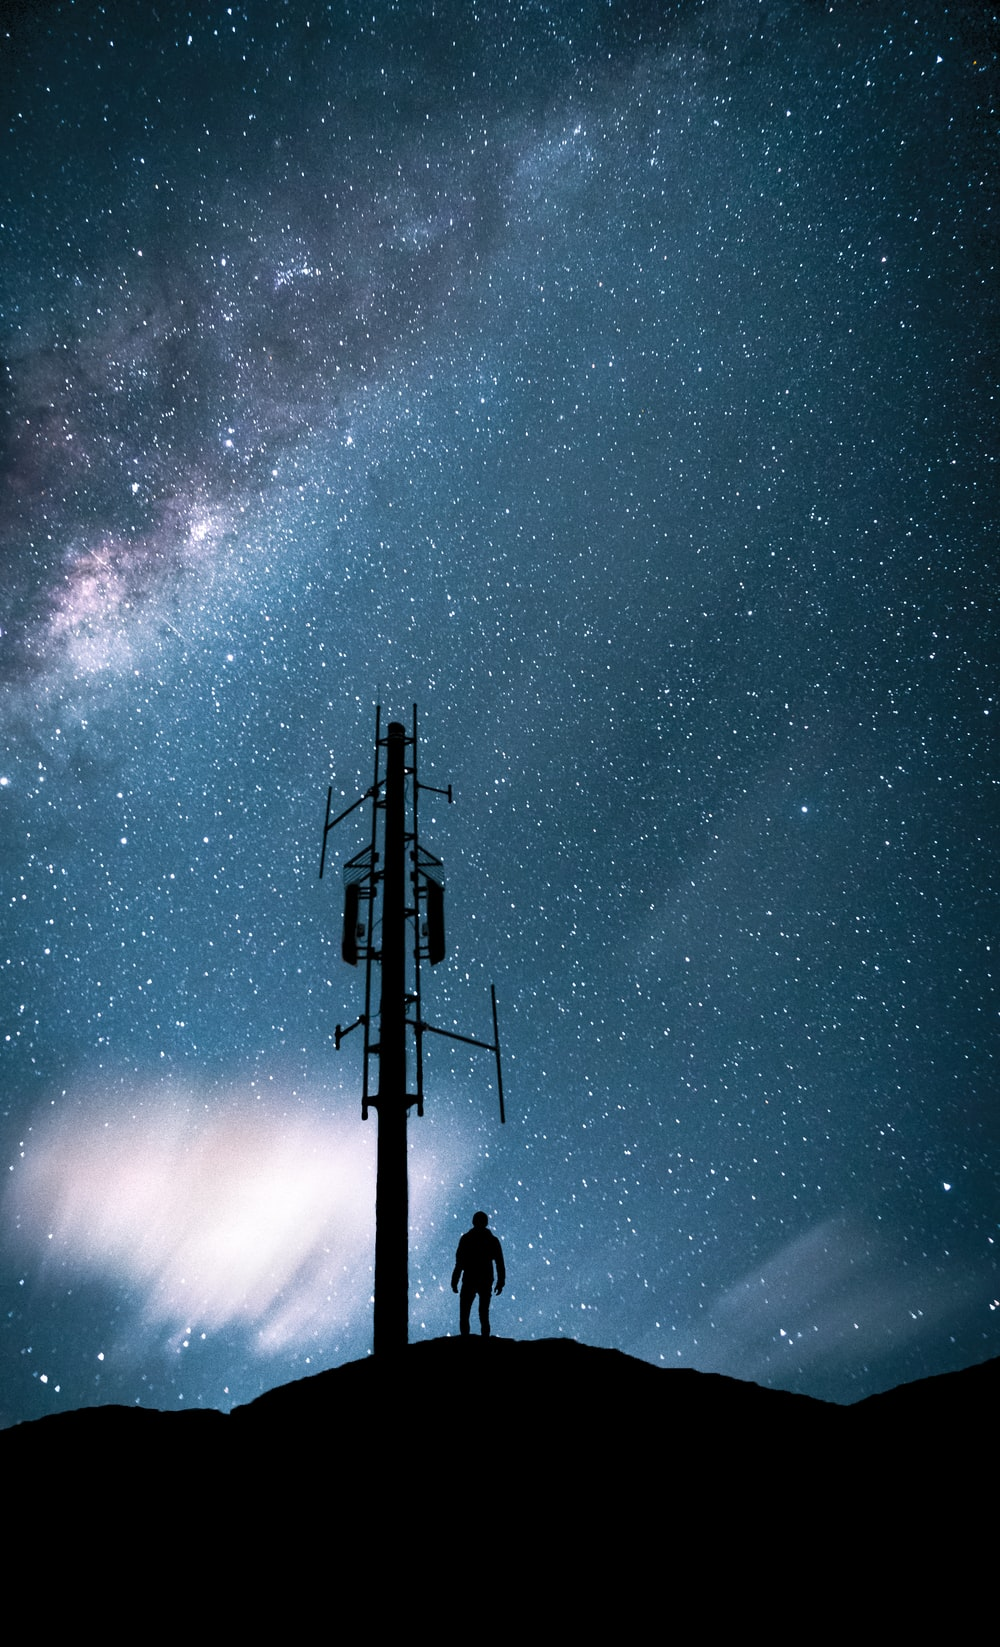 silhouette of people standing on top of electric post under starry night